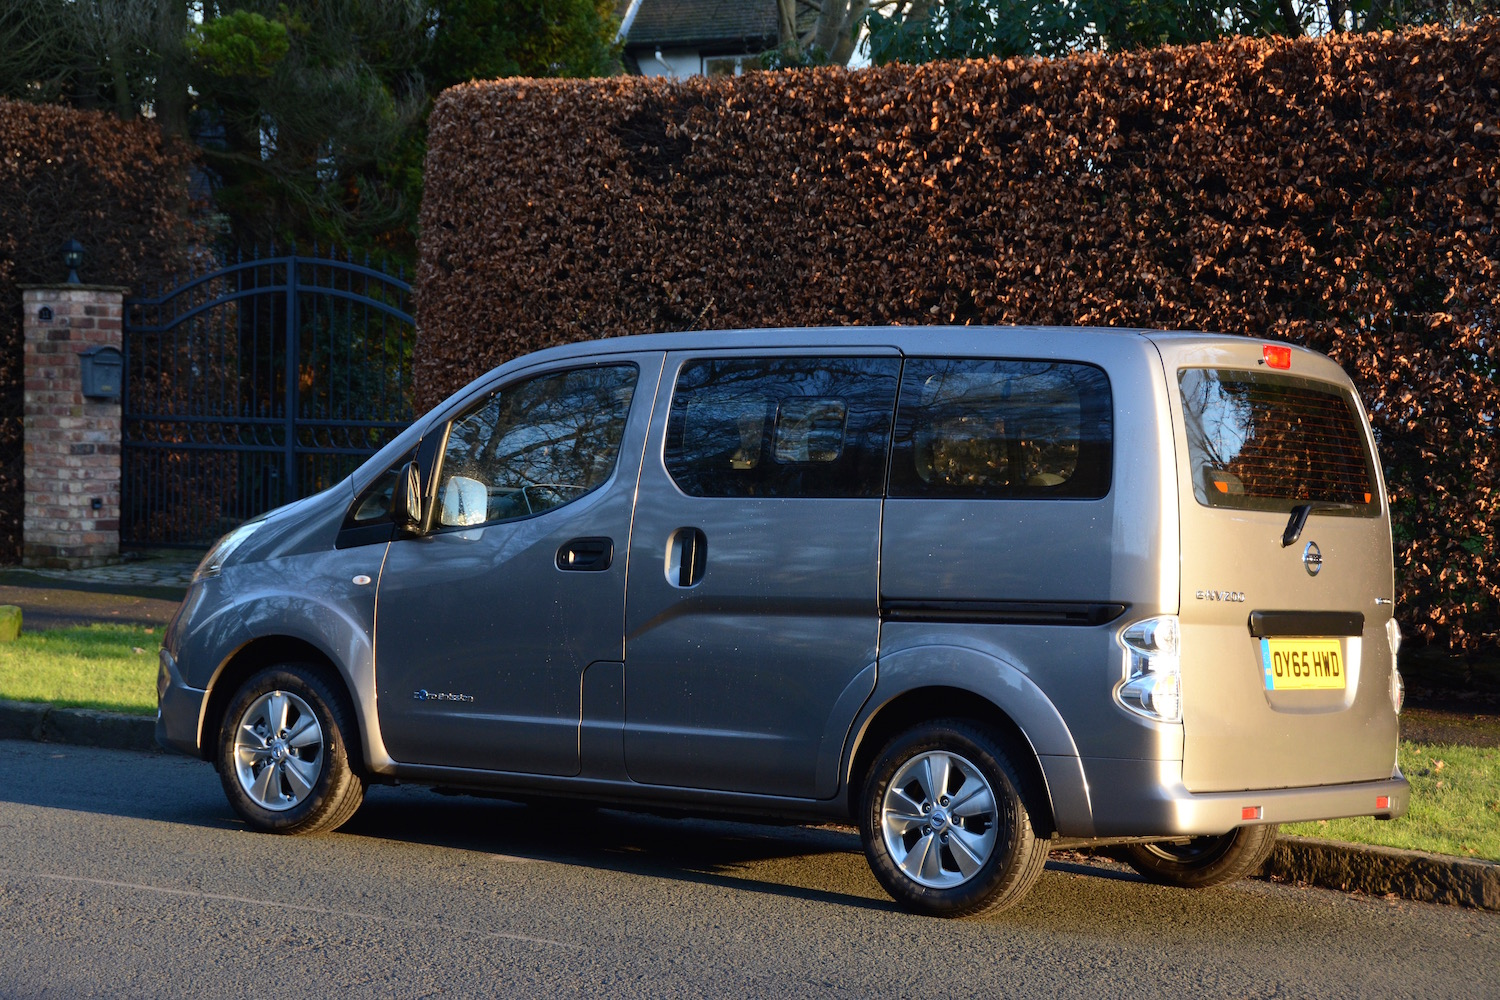 Nissan Nv Review >> Nissan e-NV200 7-Seater Review - GreenCarGuide.co.uk